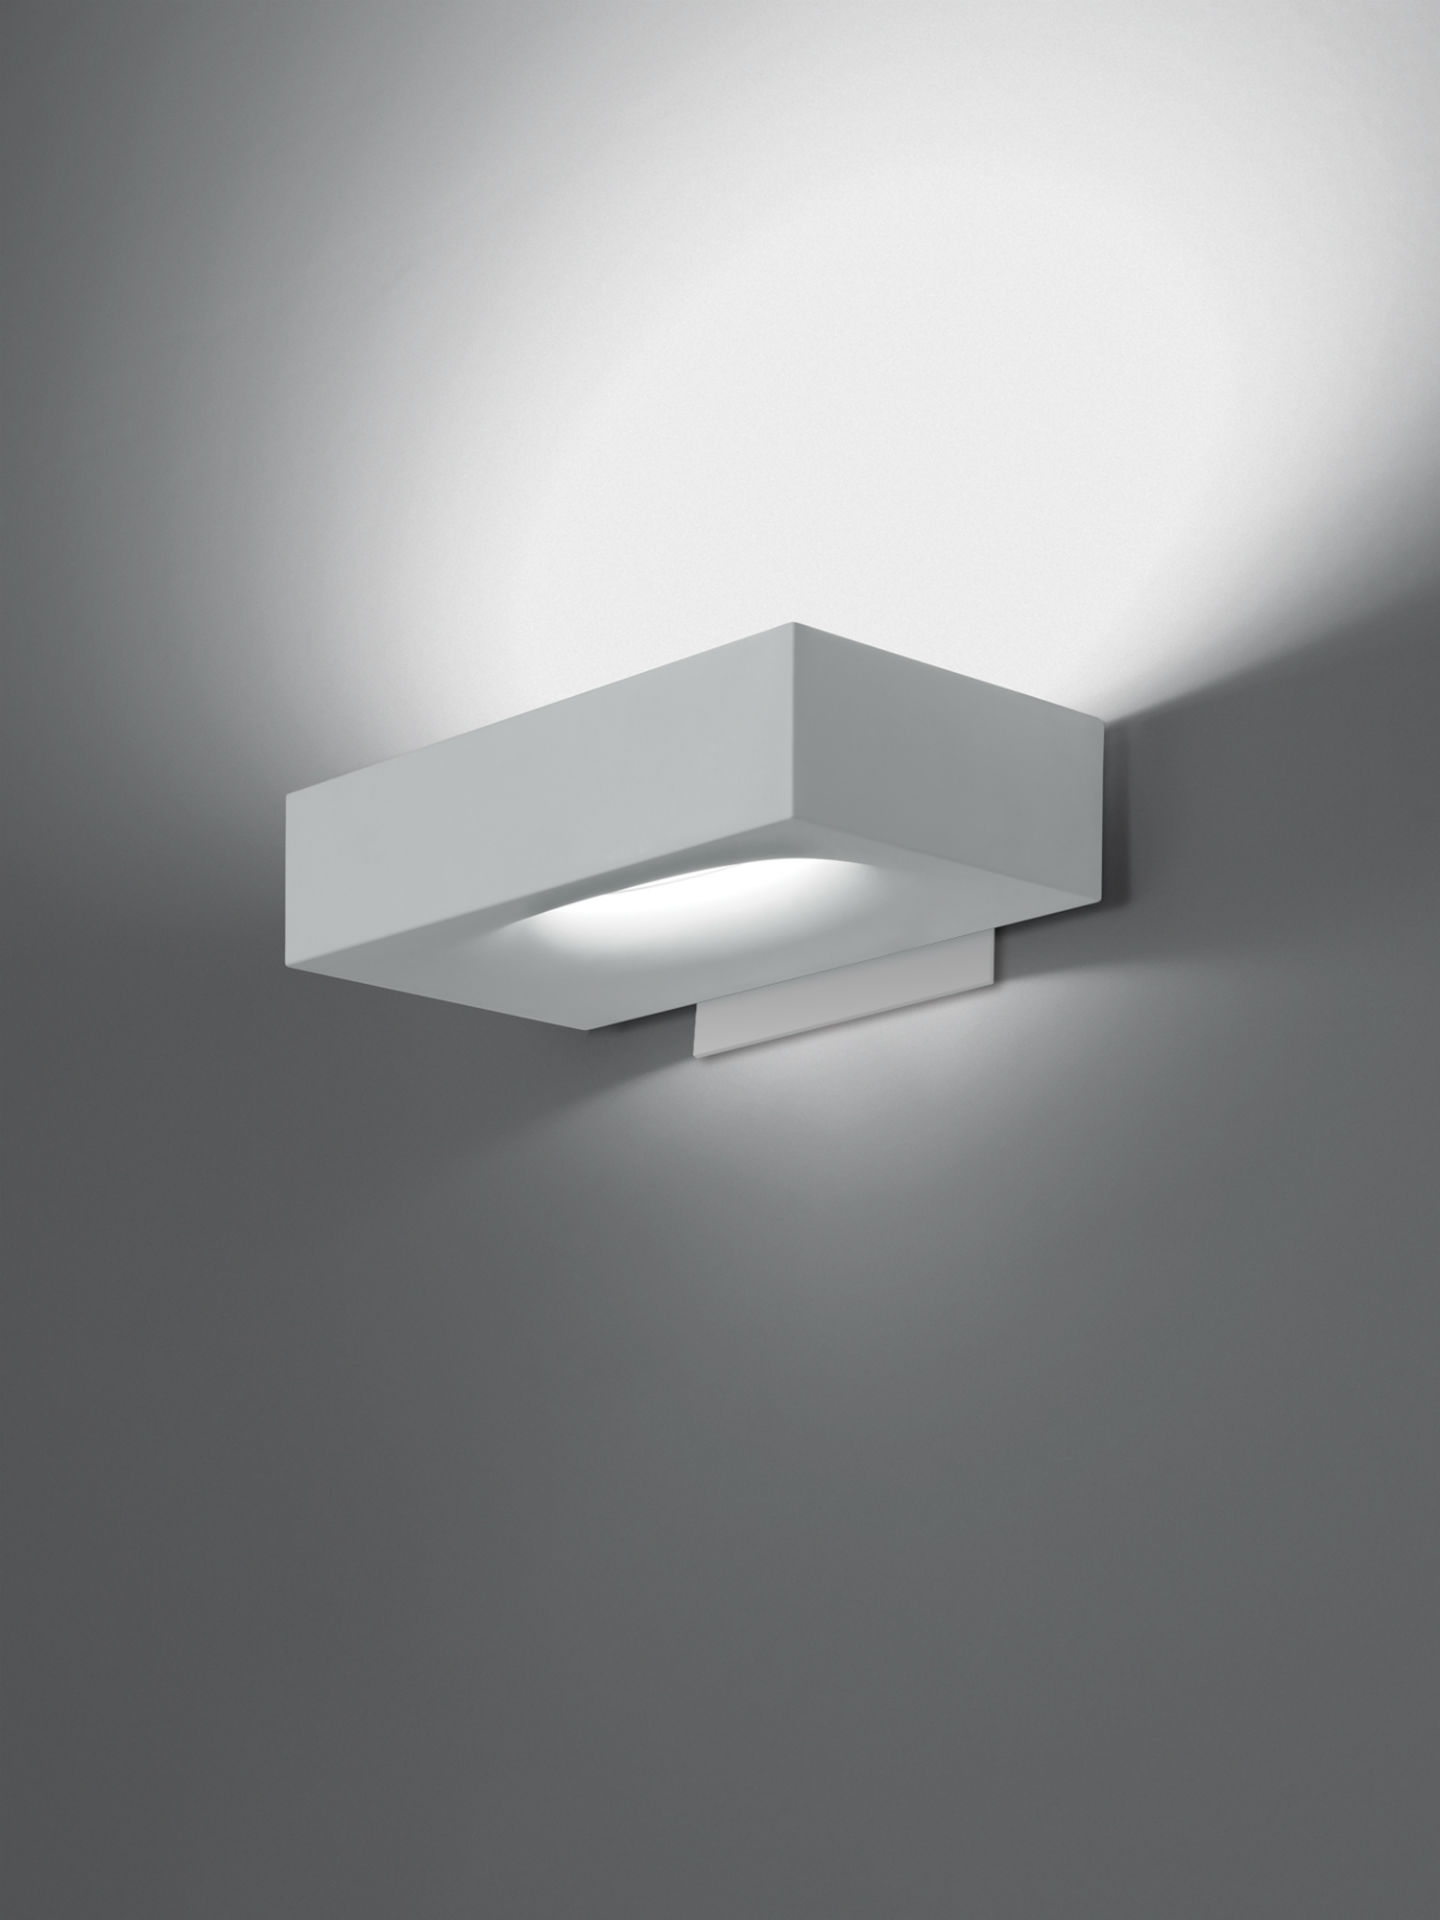 Melete Applique 1x230w R7s (HL) dimmable blanc